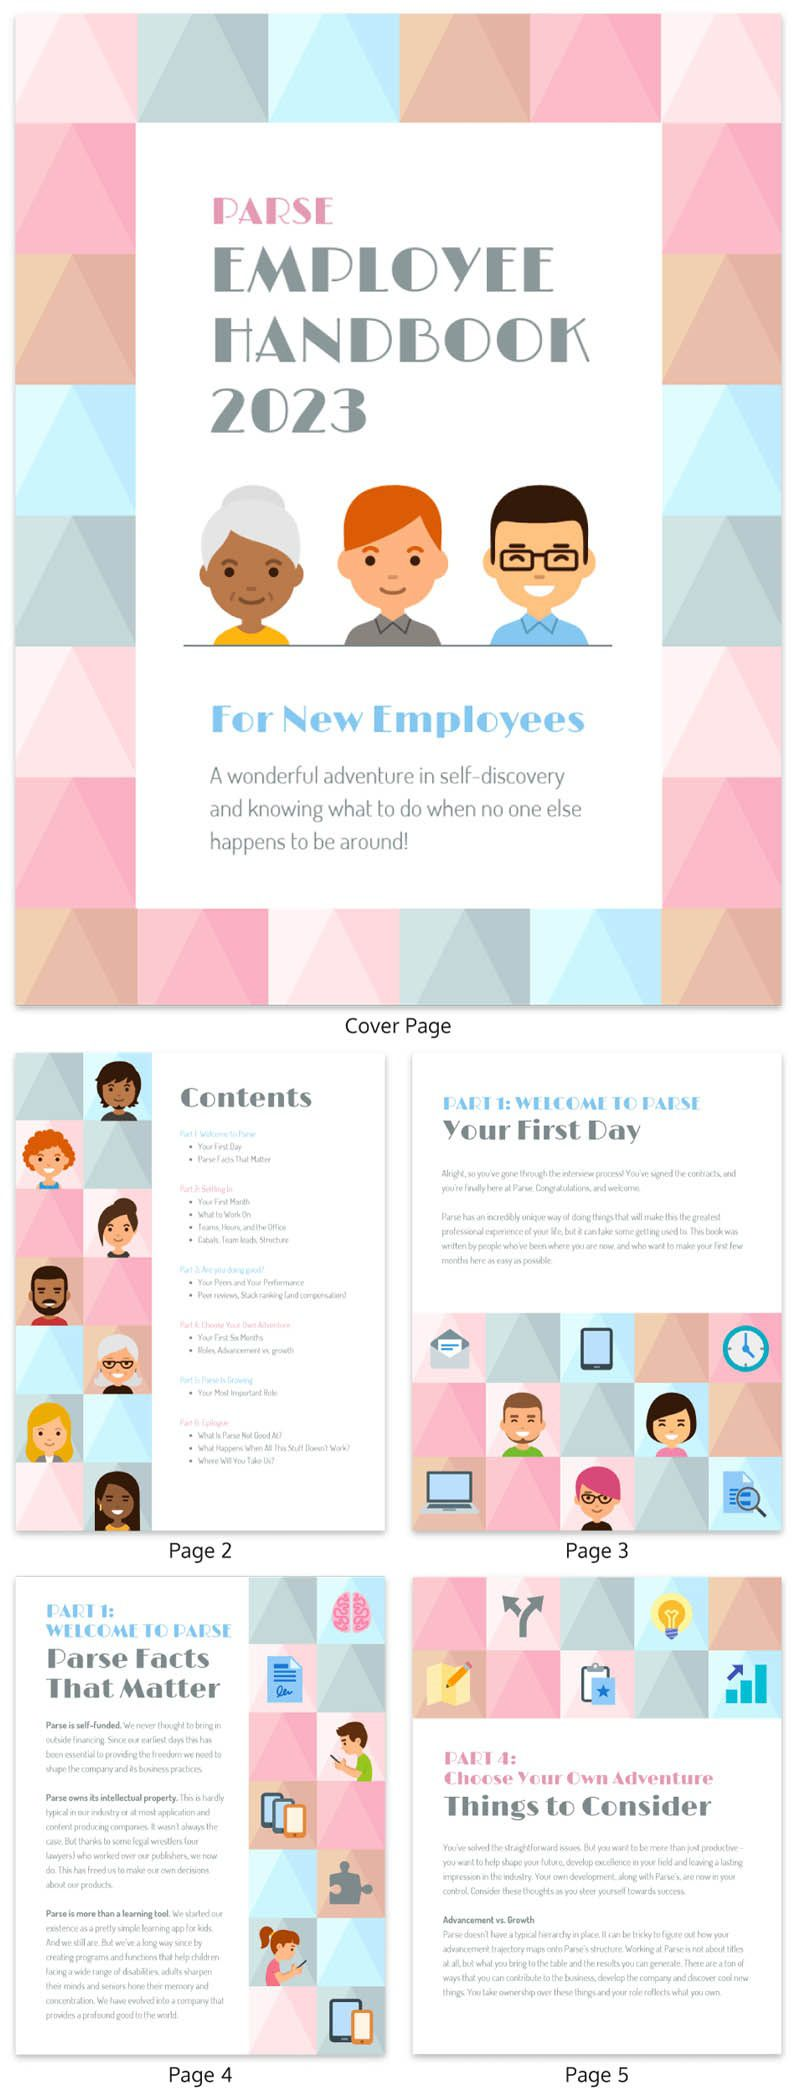 009 Unique Employee Handbook Template Free Example  Restaurant Download Induction Manual Sample In SingaporeFull